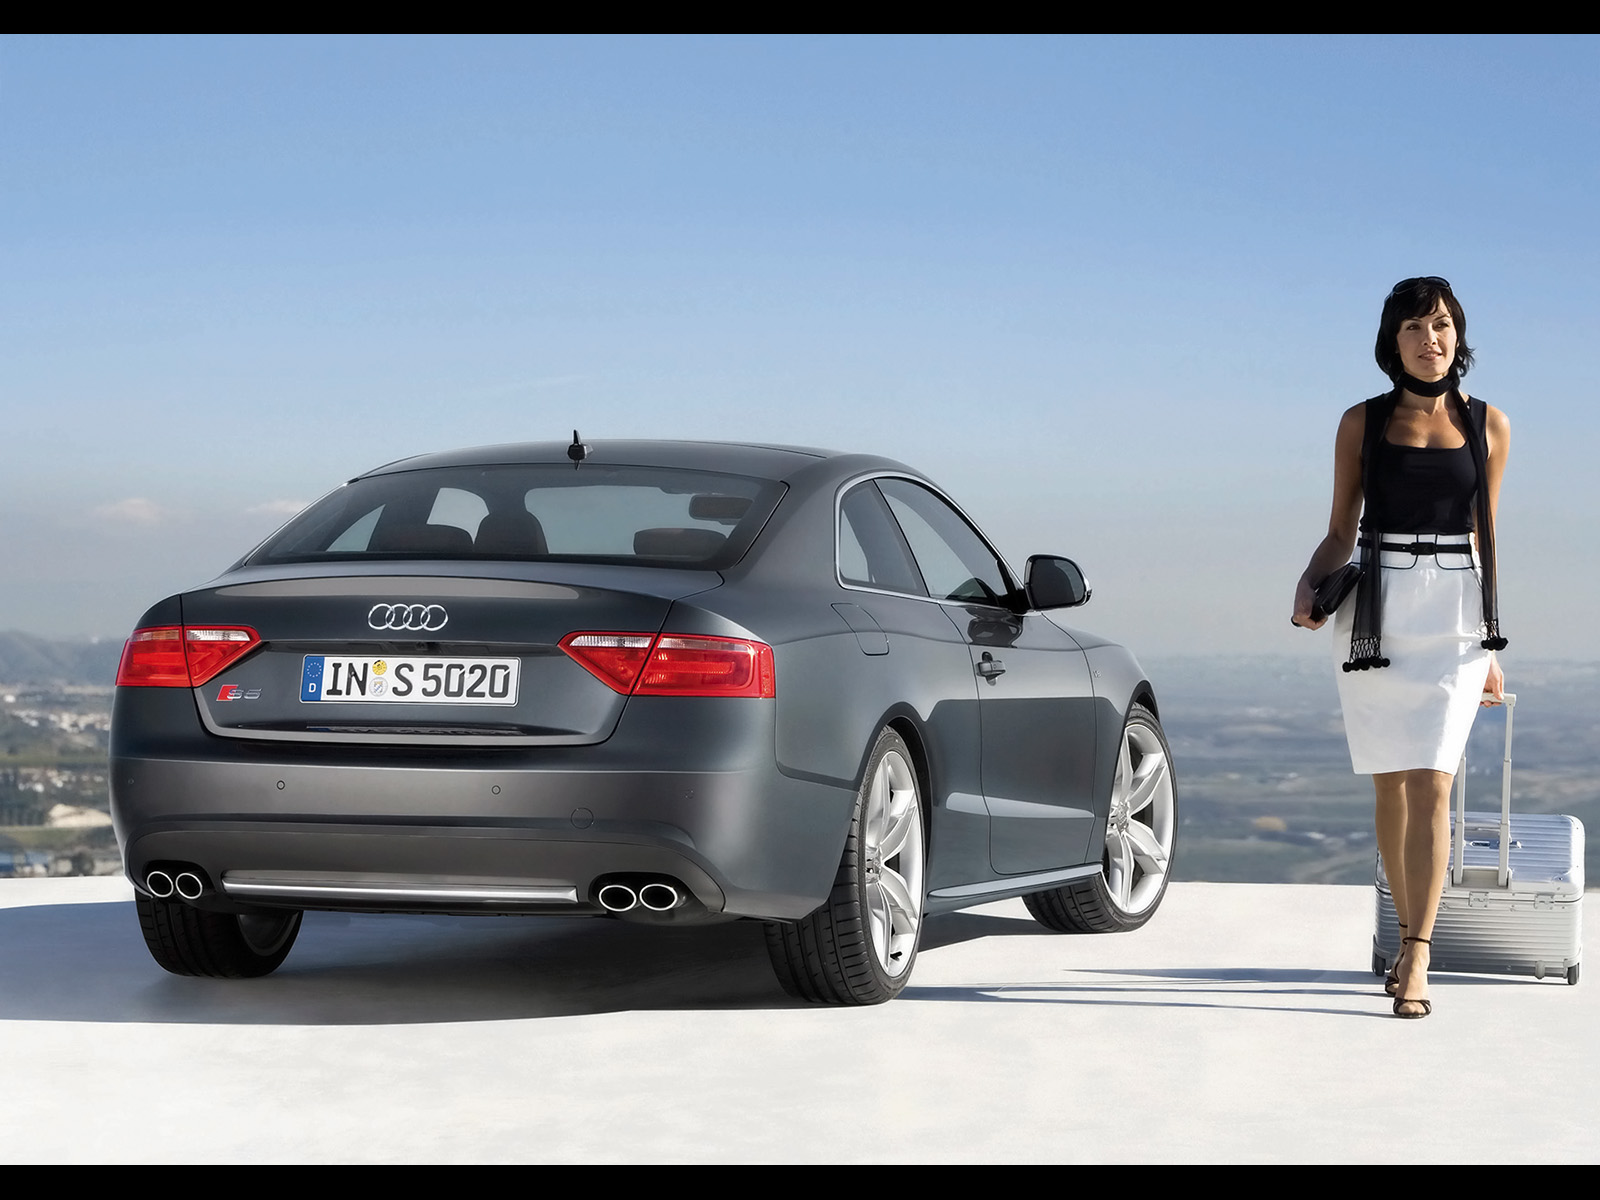 Audi s5 picture 47984 audi photo gallery carsbase com